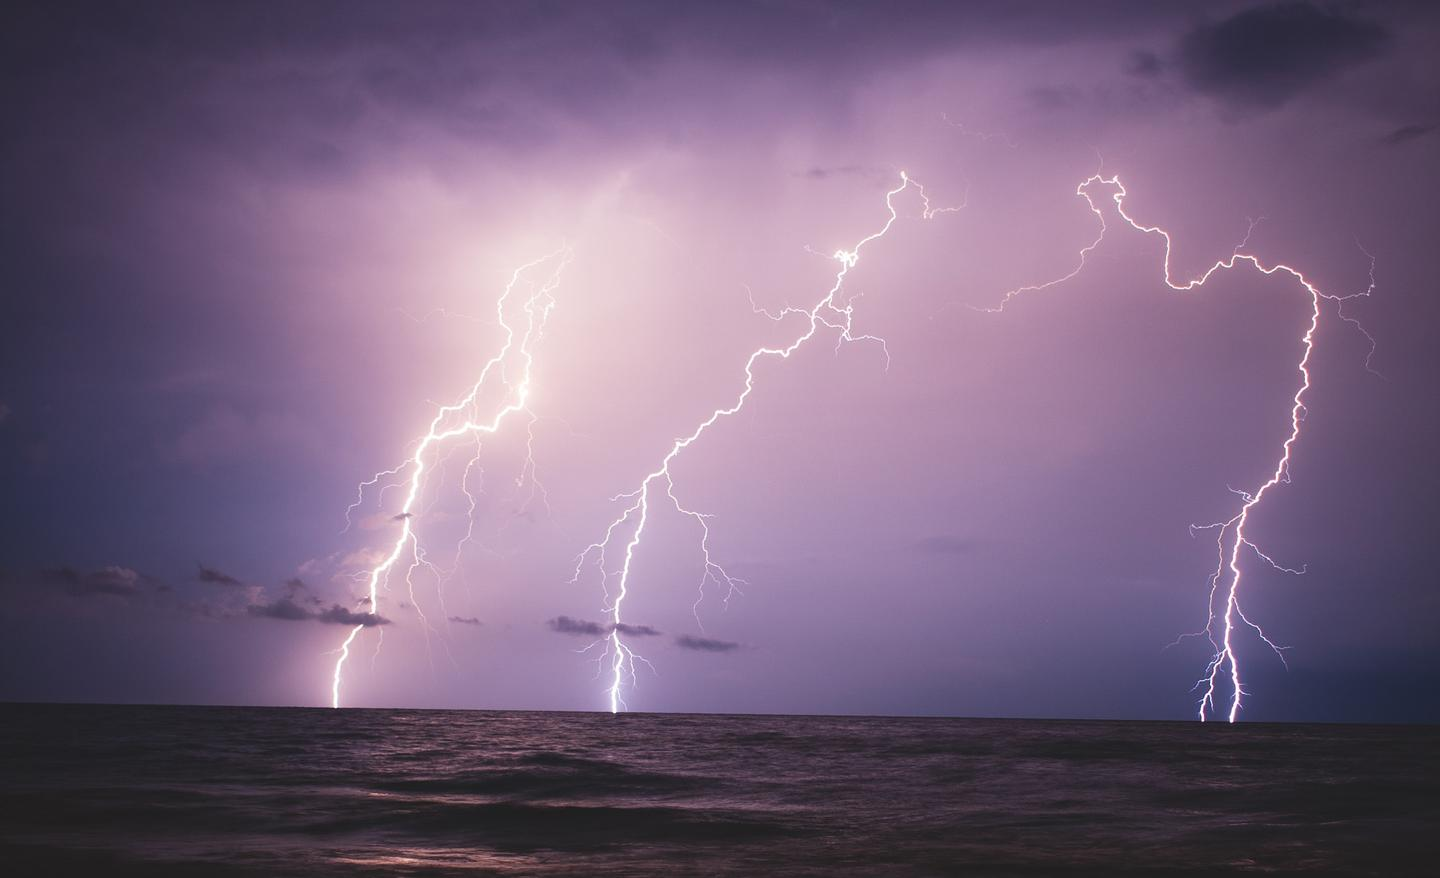 Superbolts release a thousand times more energy (at least) than the average lightning strike and tend to occur mostly over oceans and seas